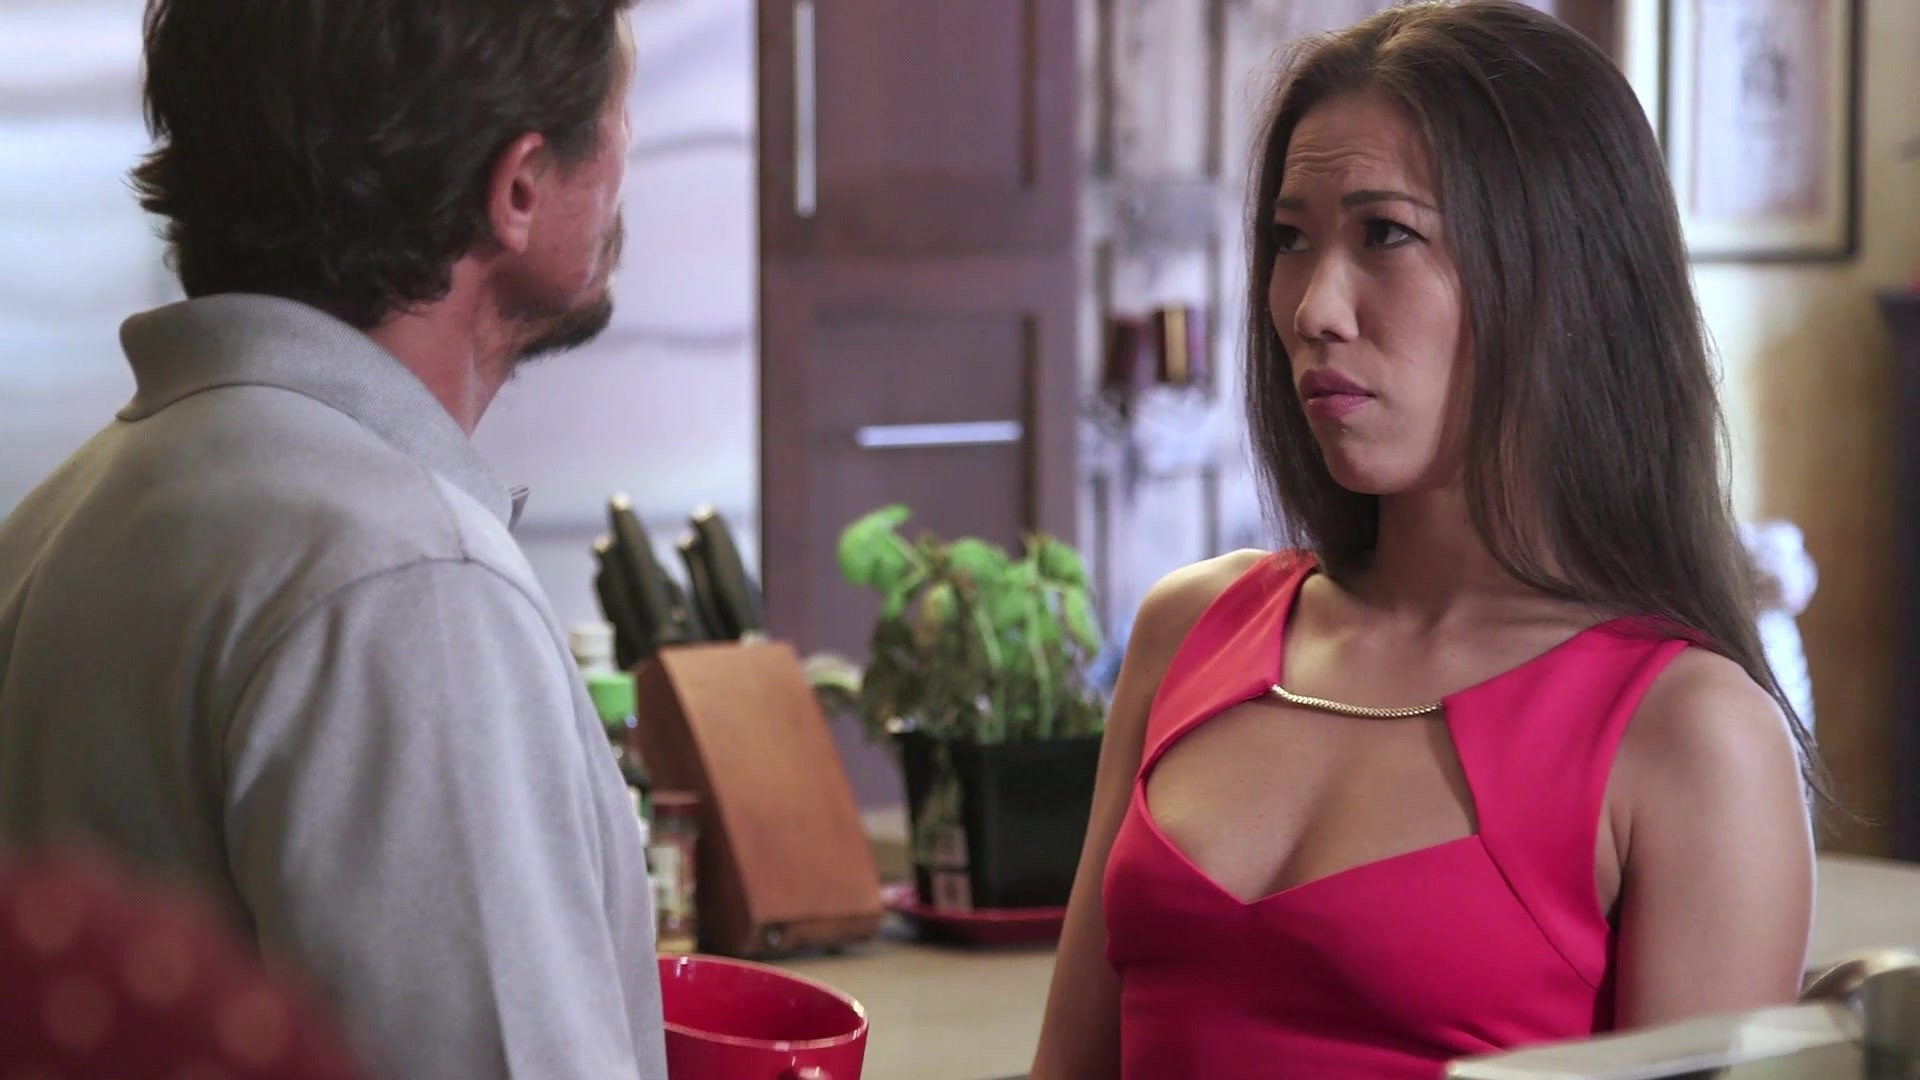 Scene with Tommy Gunn, John Strong and Kalina Ryu - image 3 out of 20